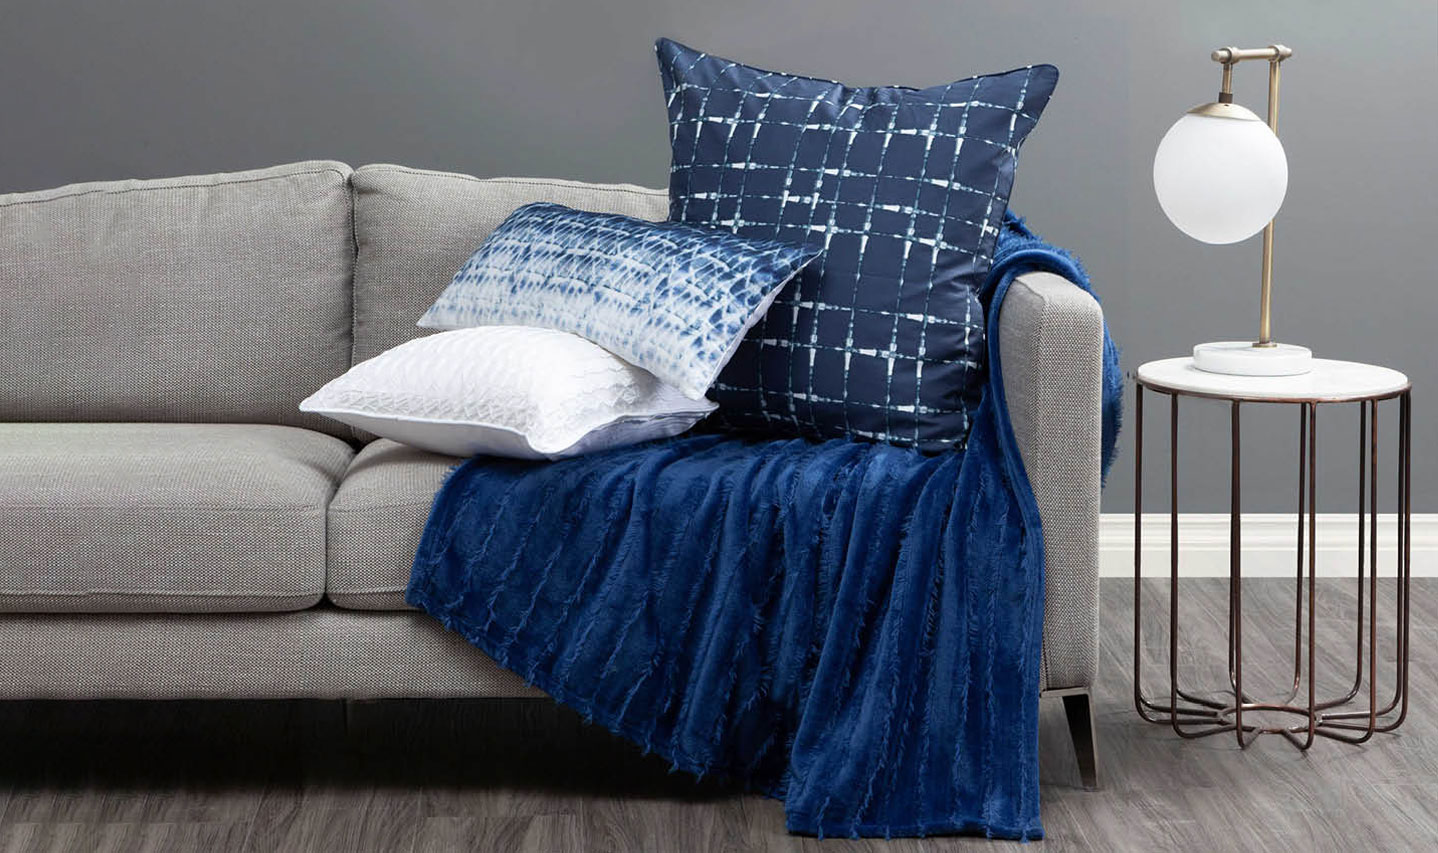 Blue Toned Mix of Decor Accessories